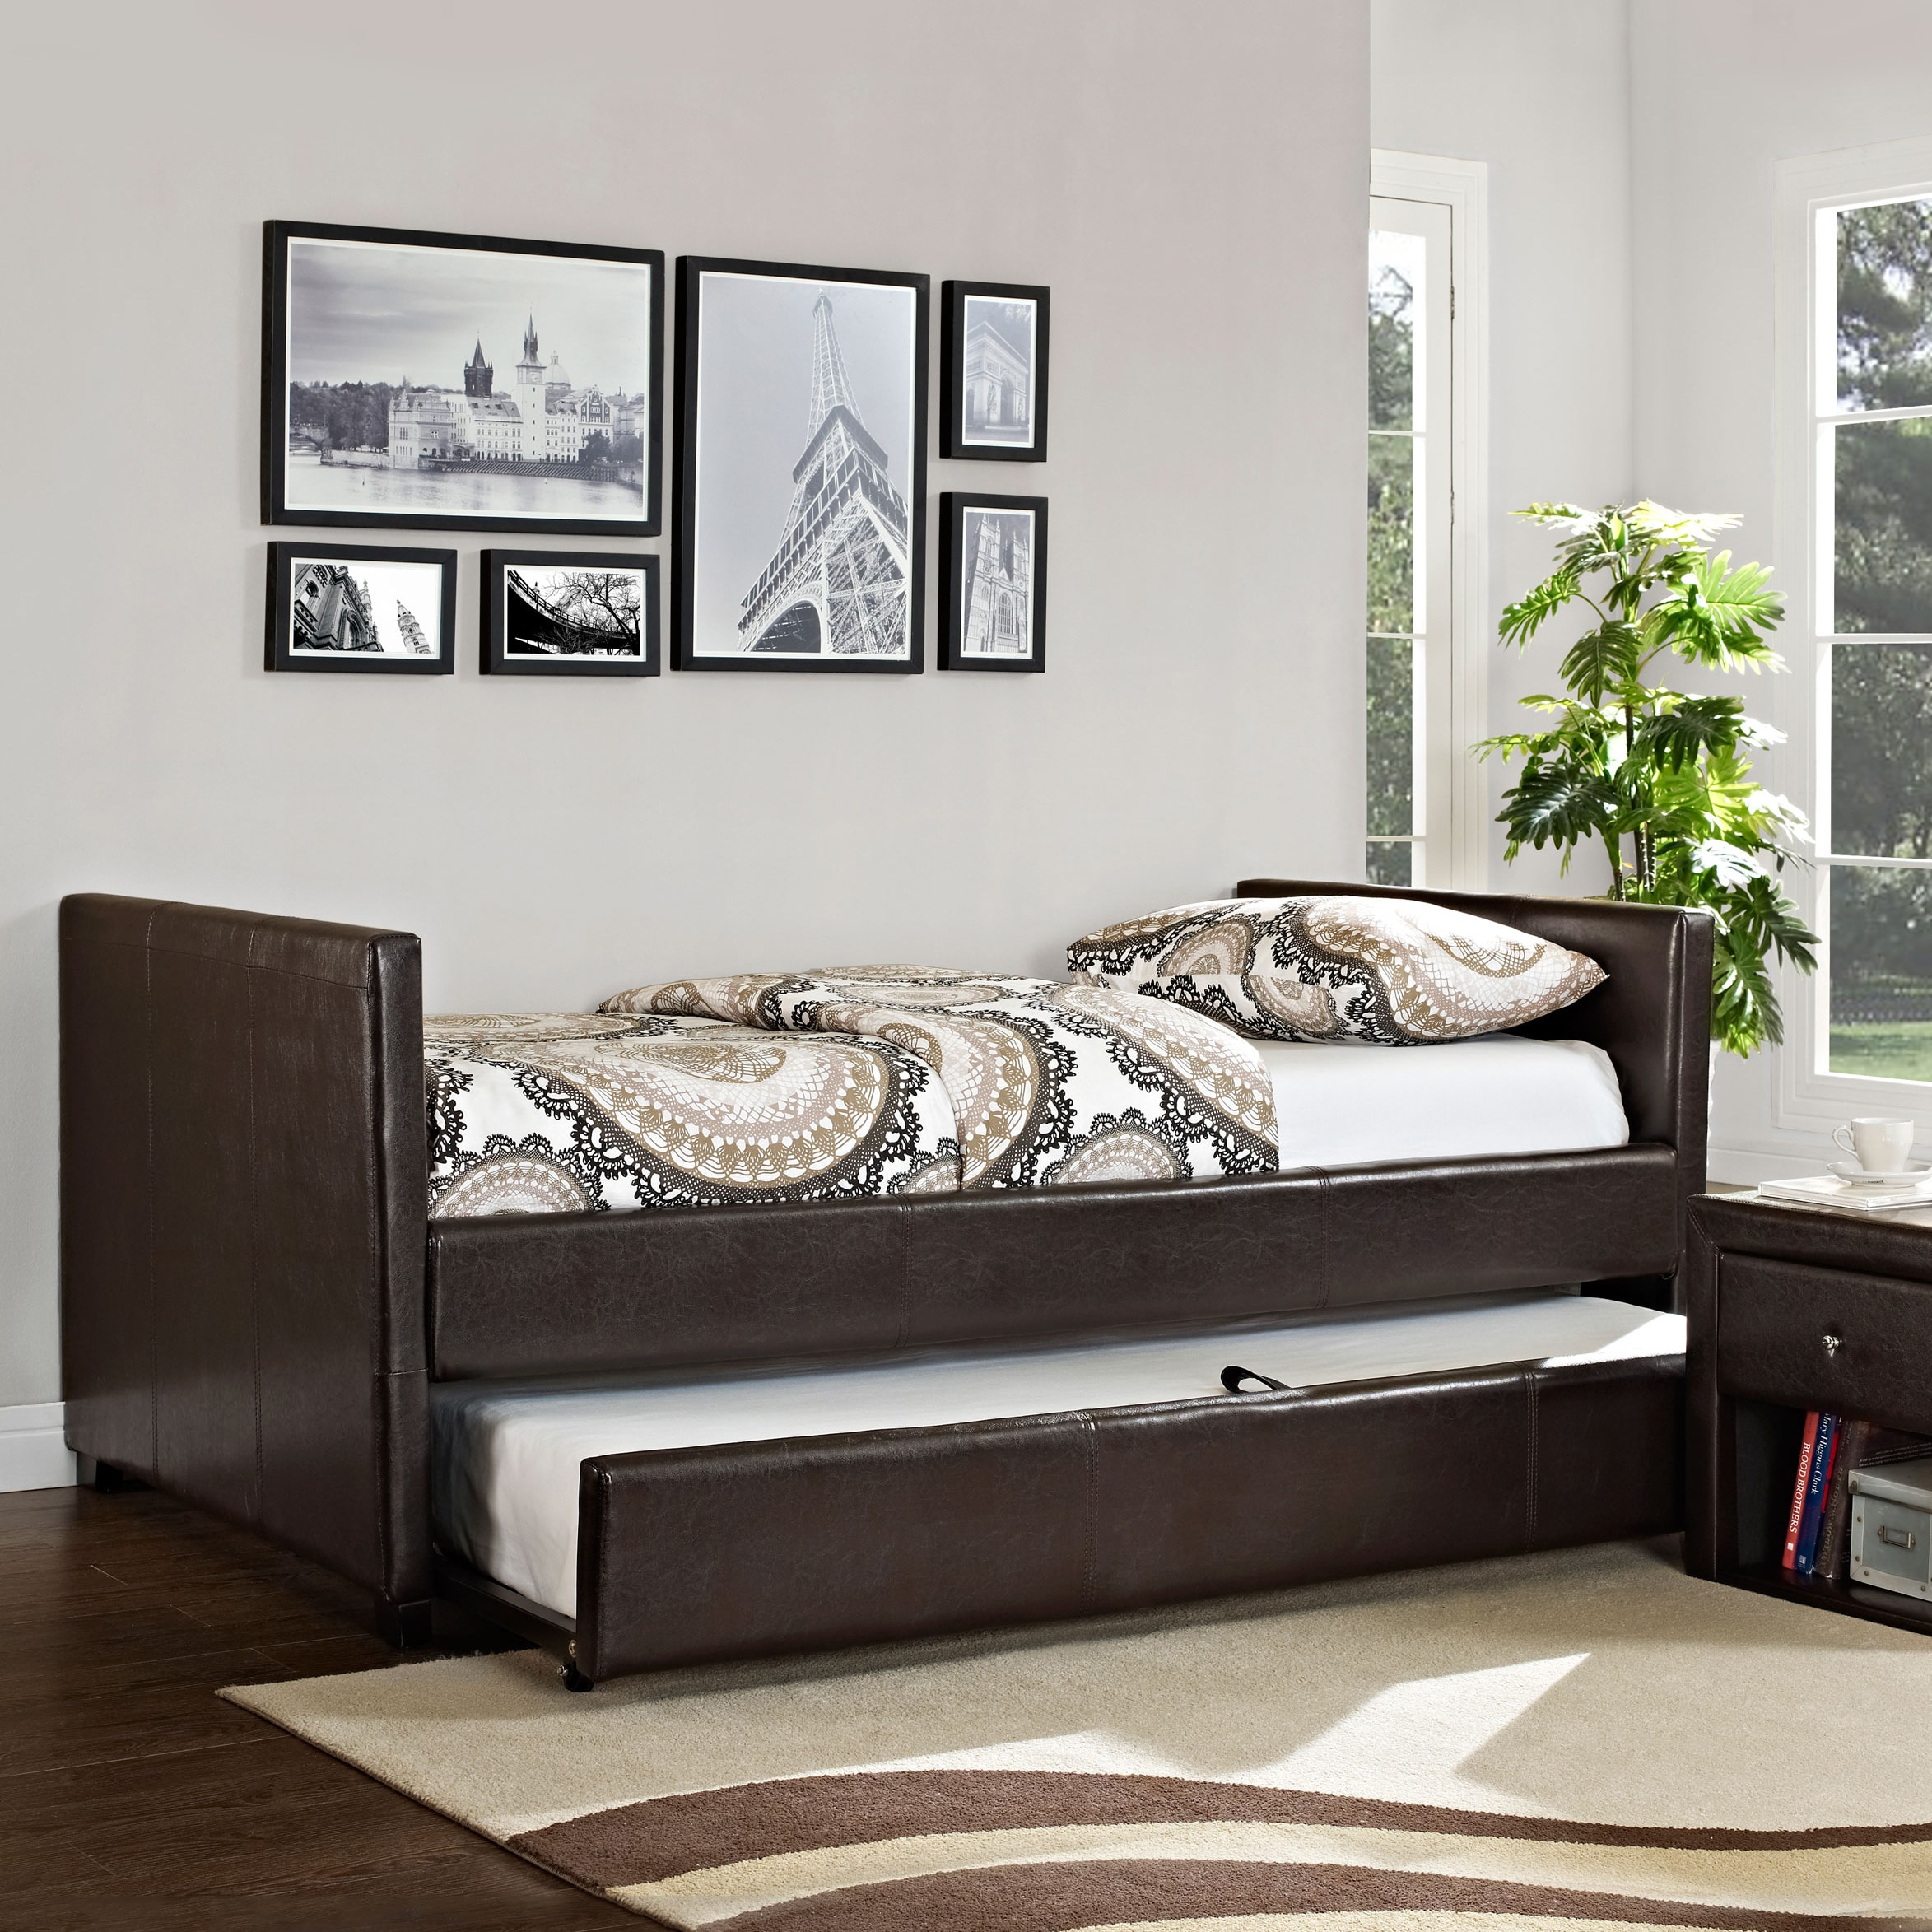 Metro Faux Leather Brown Day Bed/ Trundle (Metro Faux Lea...